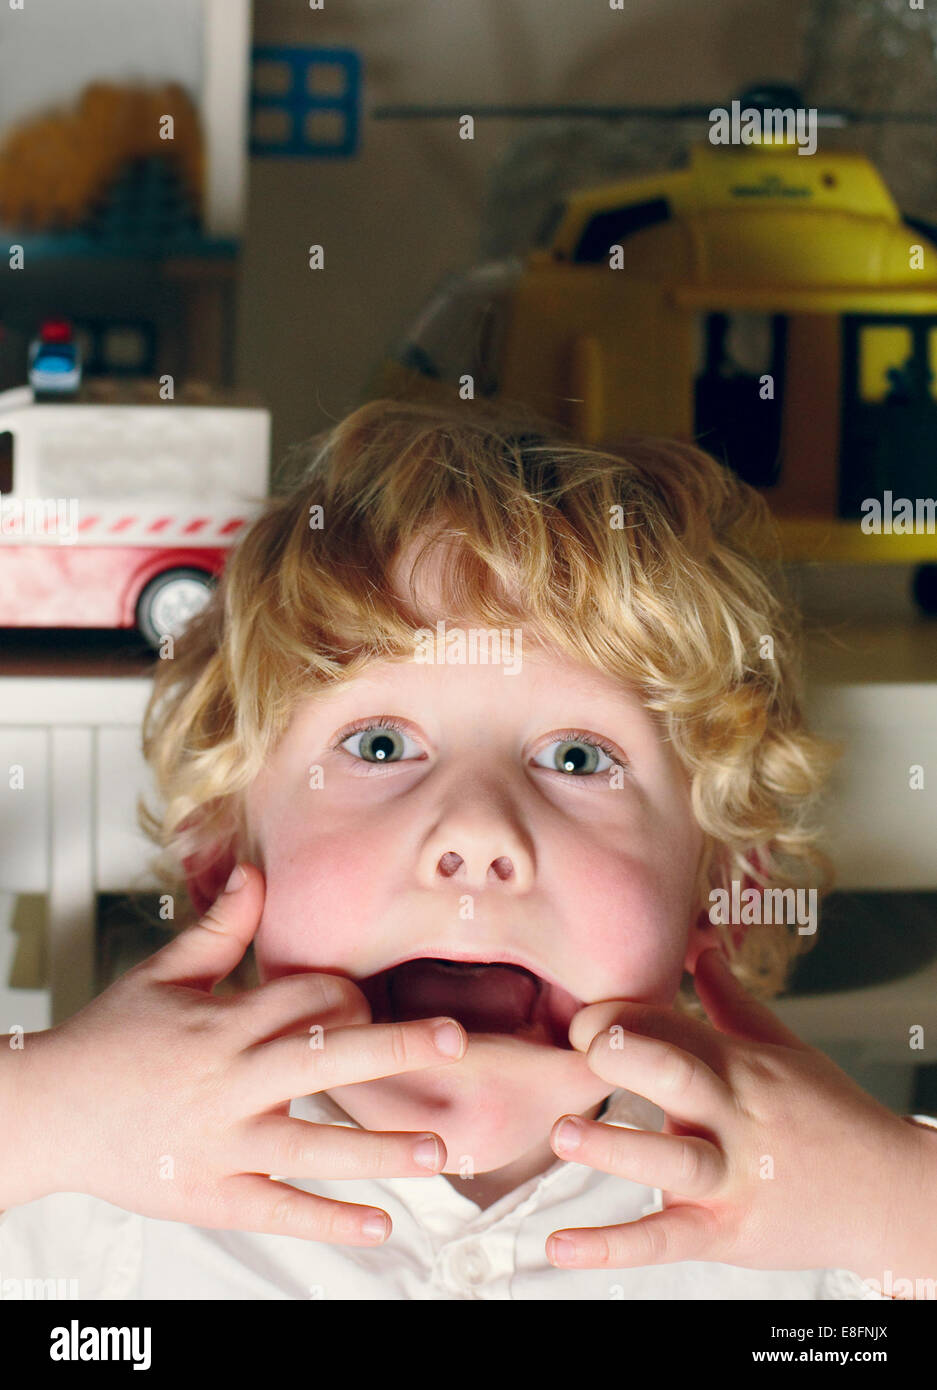 Pays-bas, Portrait of boy making funny faces Photo Stock